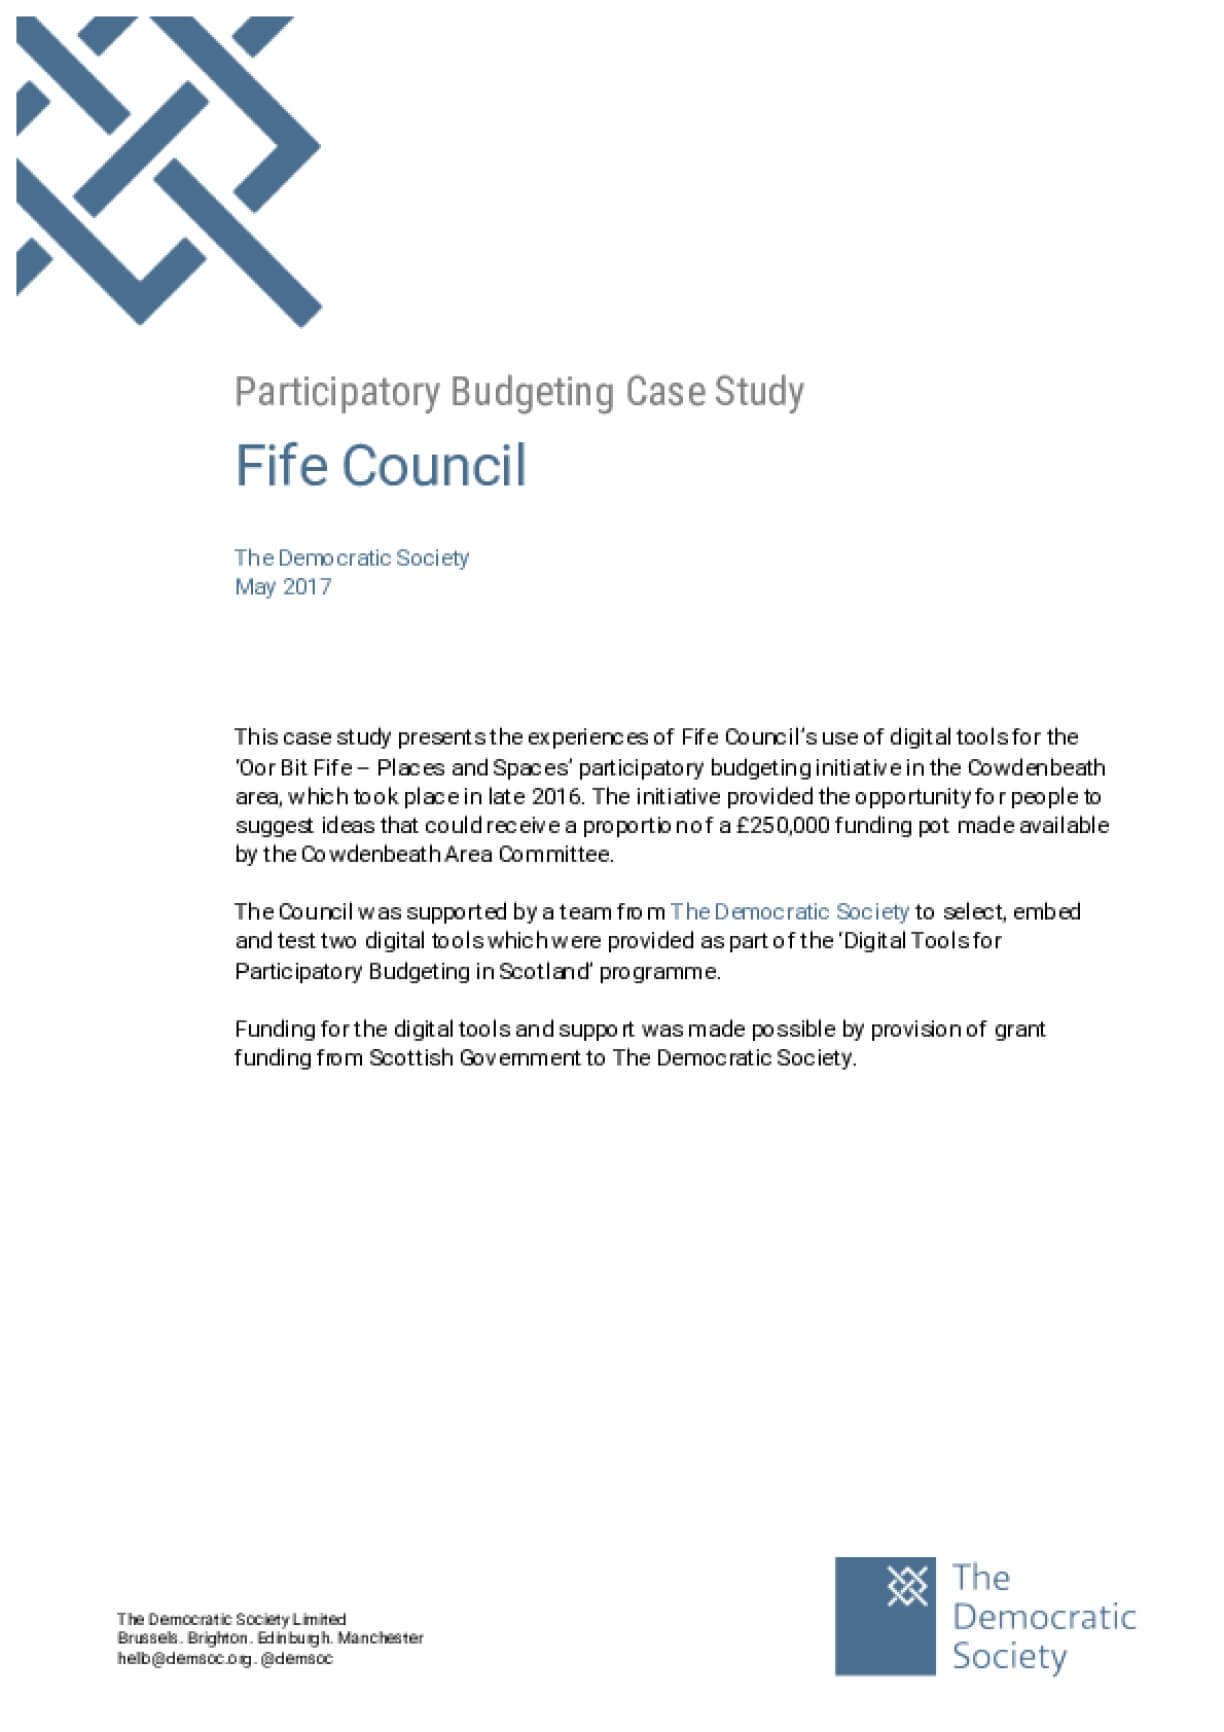 Participatory Budgeting Case Study: Fife Council